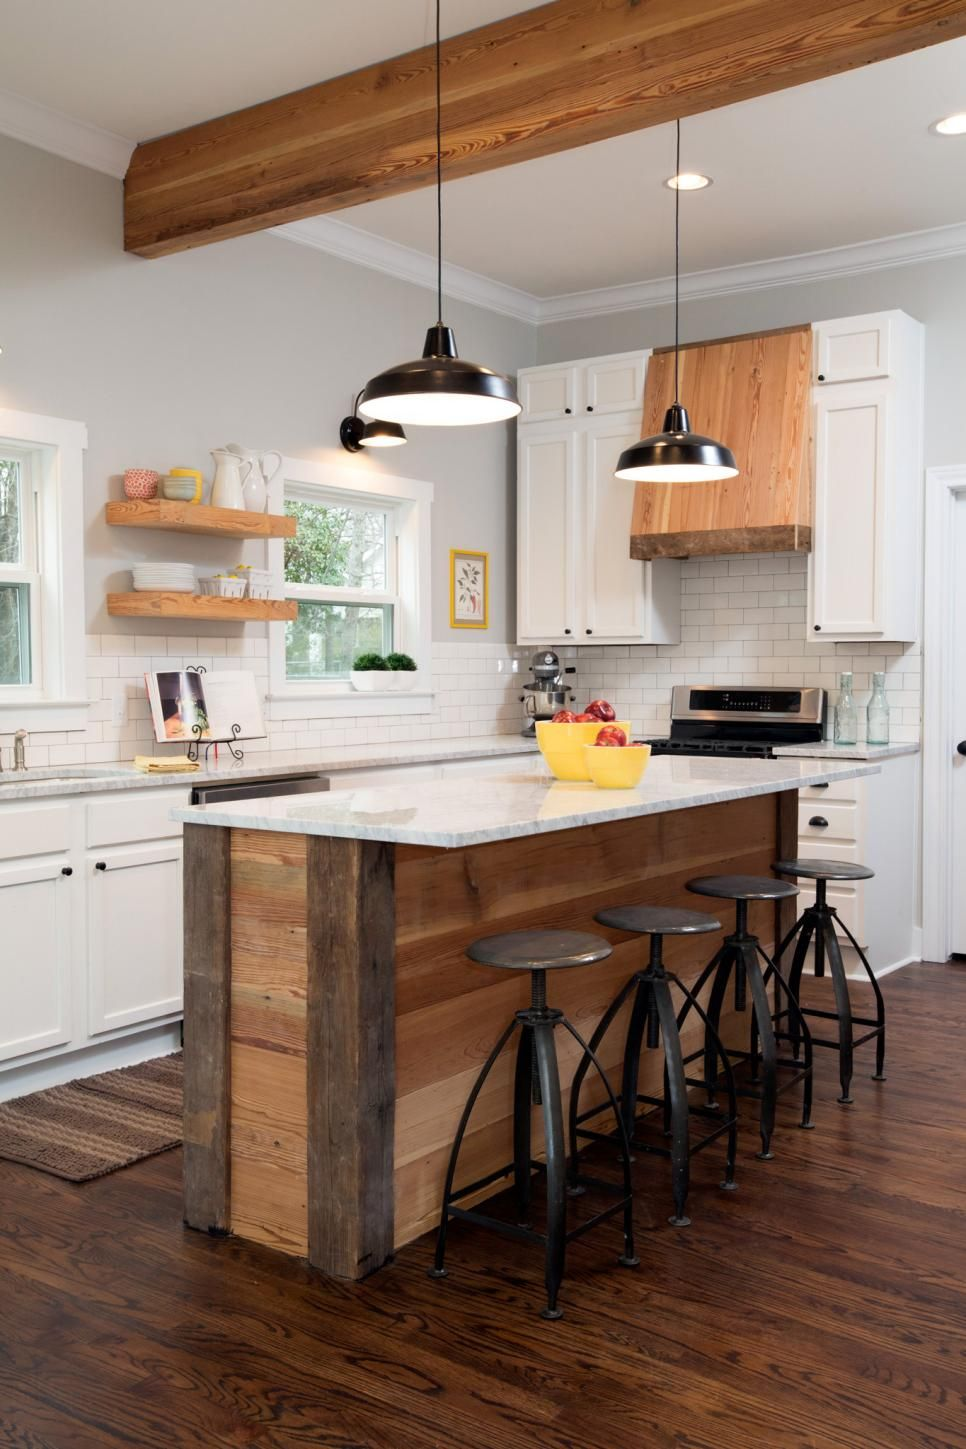 Fixer upper kitchen island pictures - Chip And Joanna Take On Their Biggest Fixer Upper To Date When They Help Furniture Designer